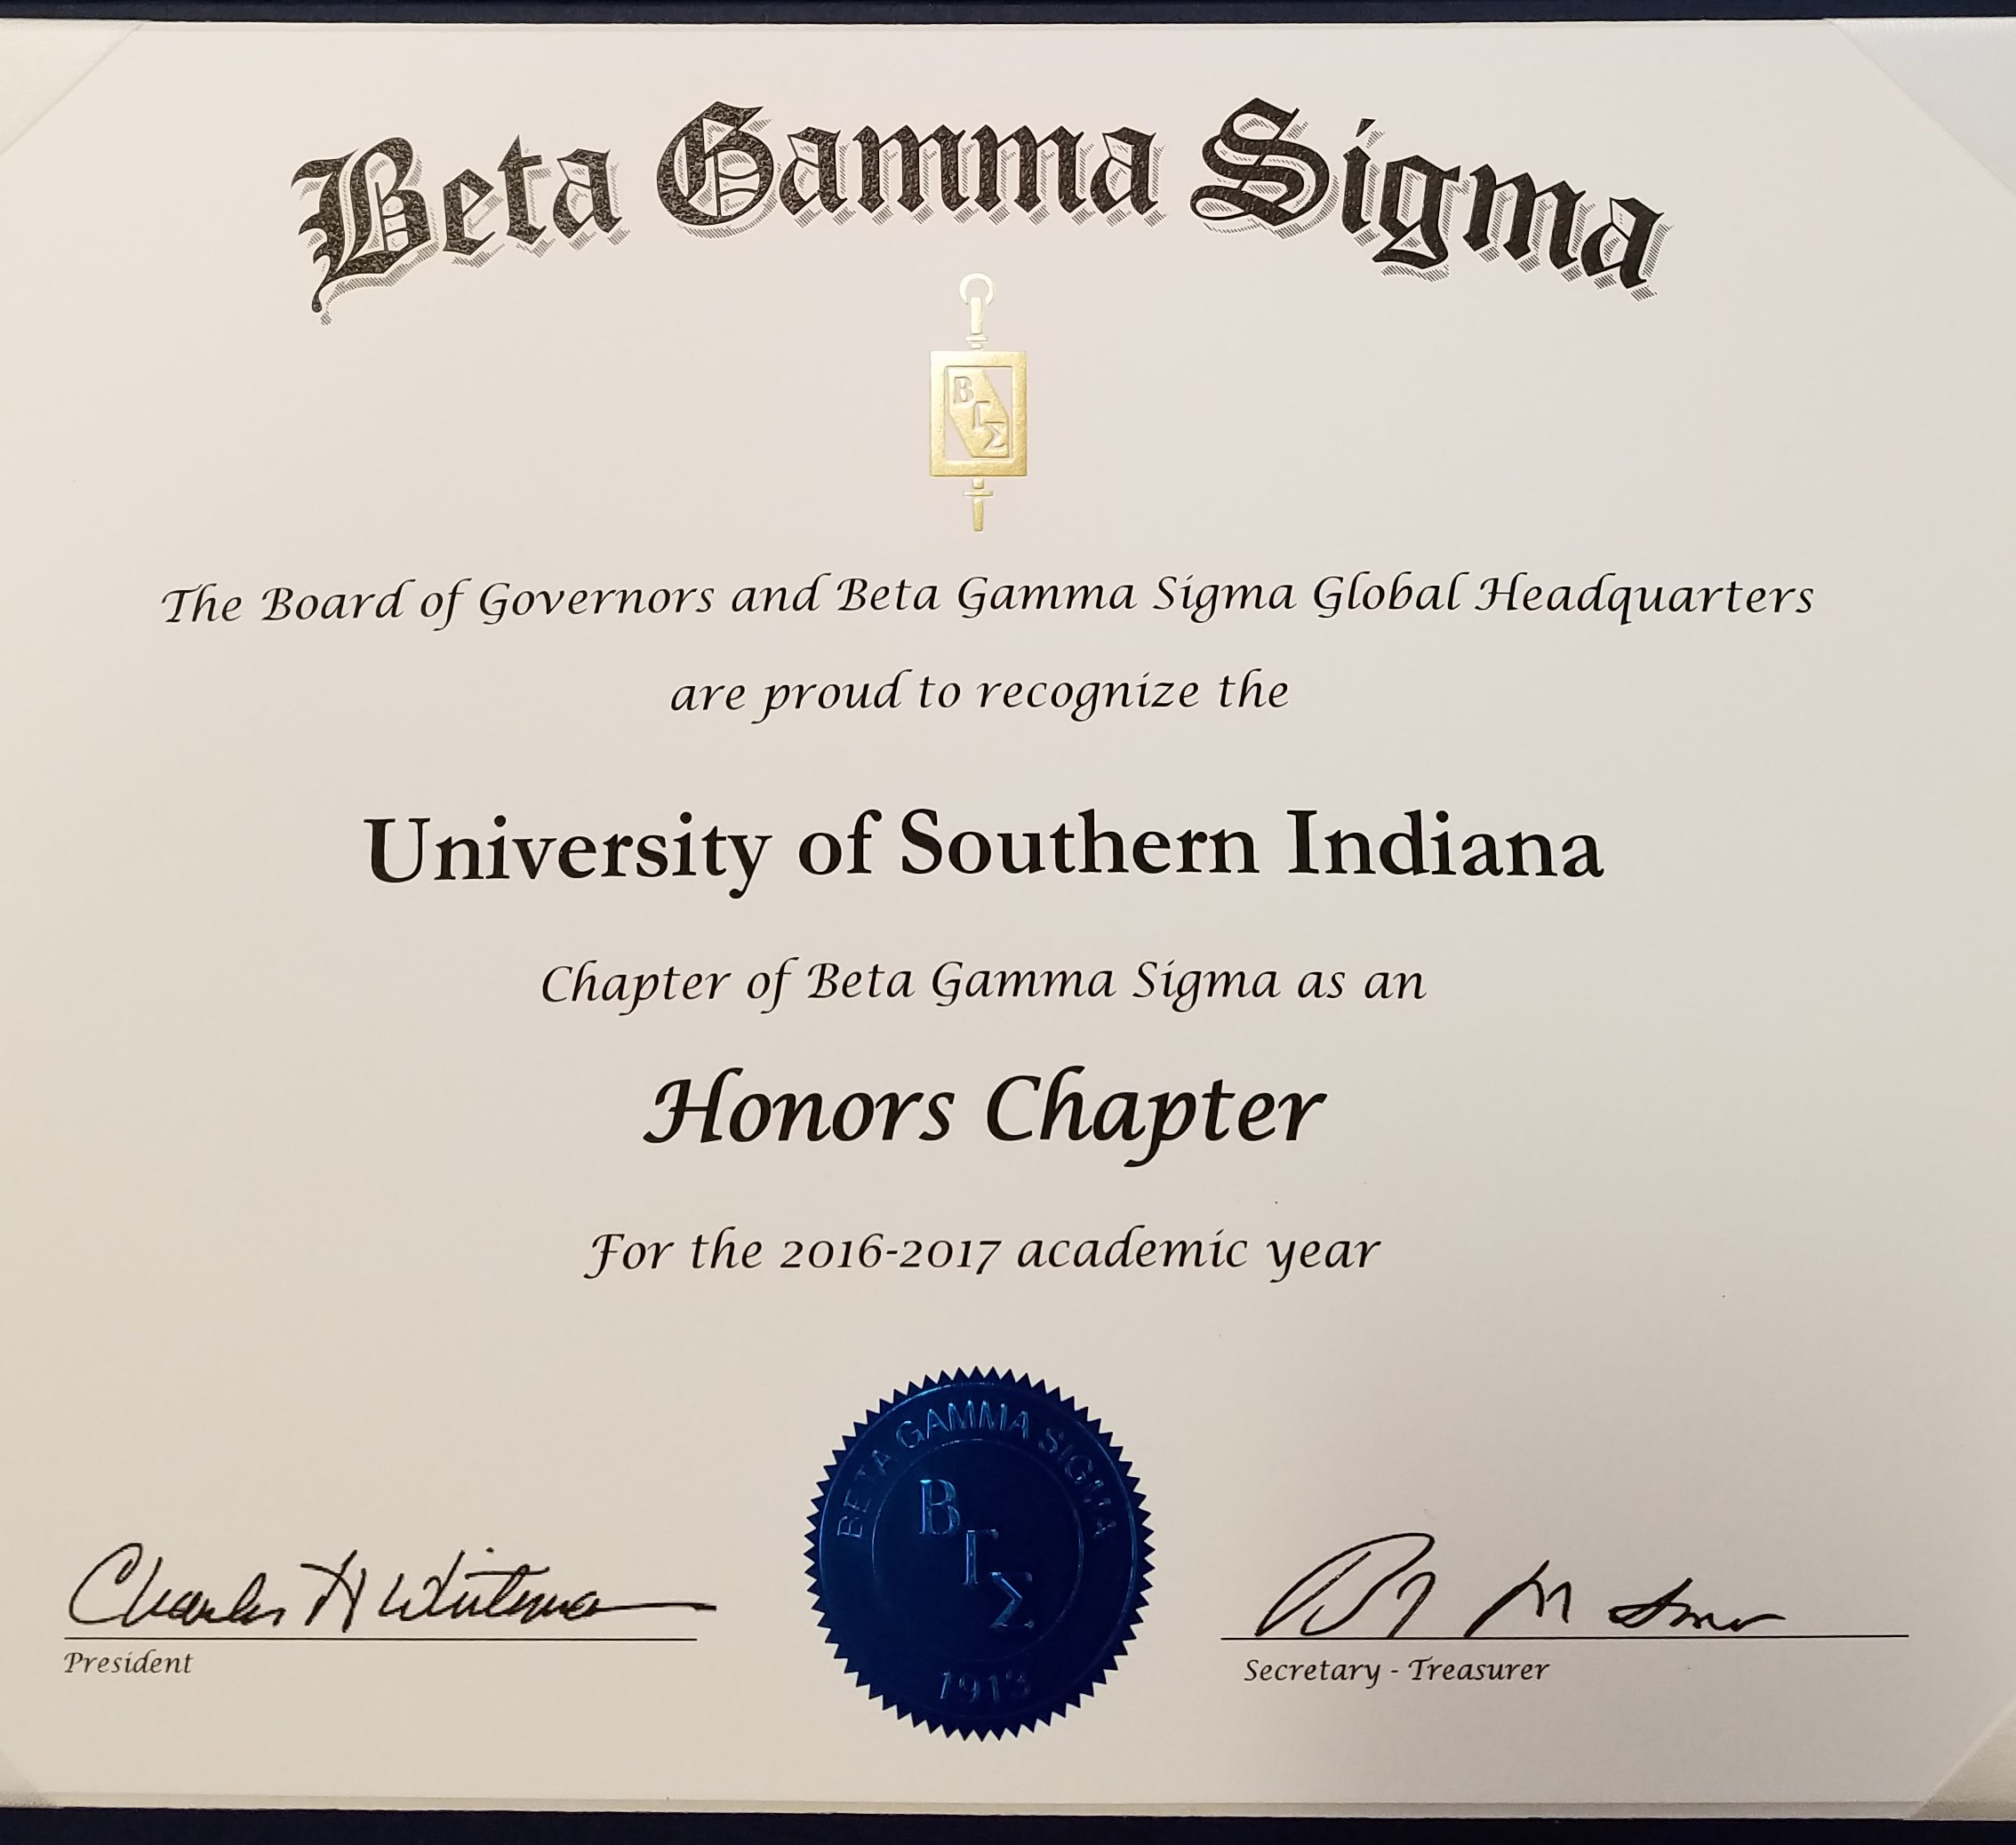 USI Chapter of Beta Gamma Sigma recognized as an Honors Chapter